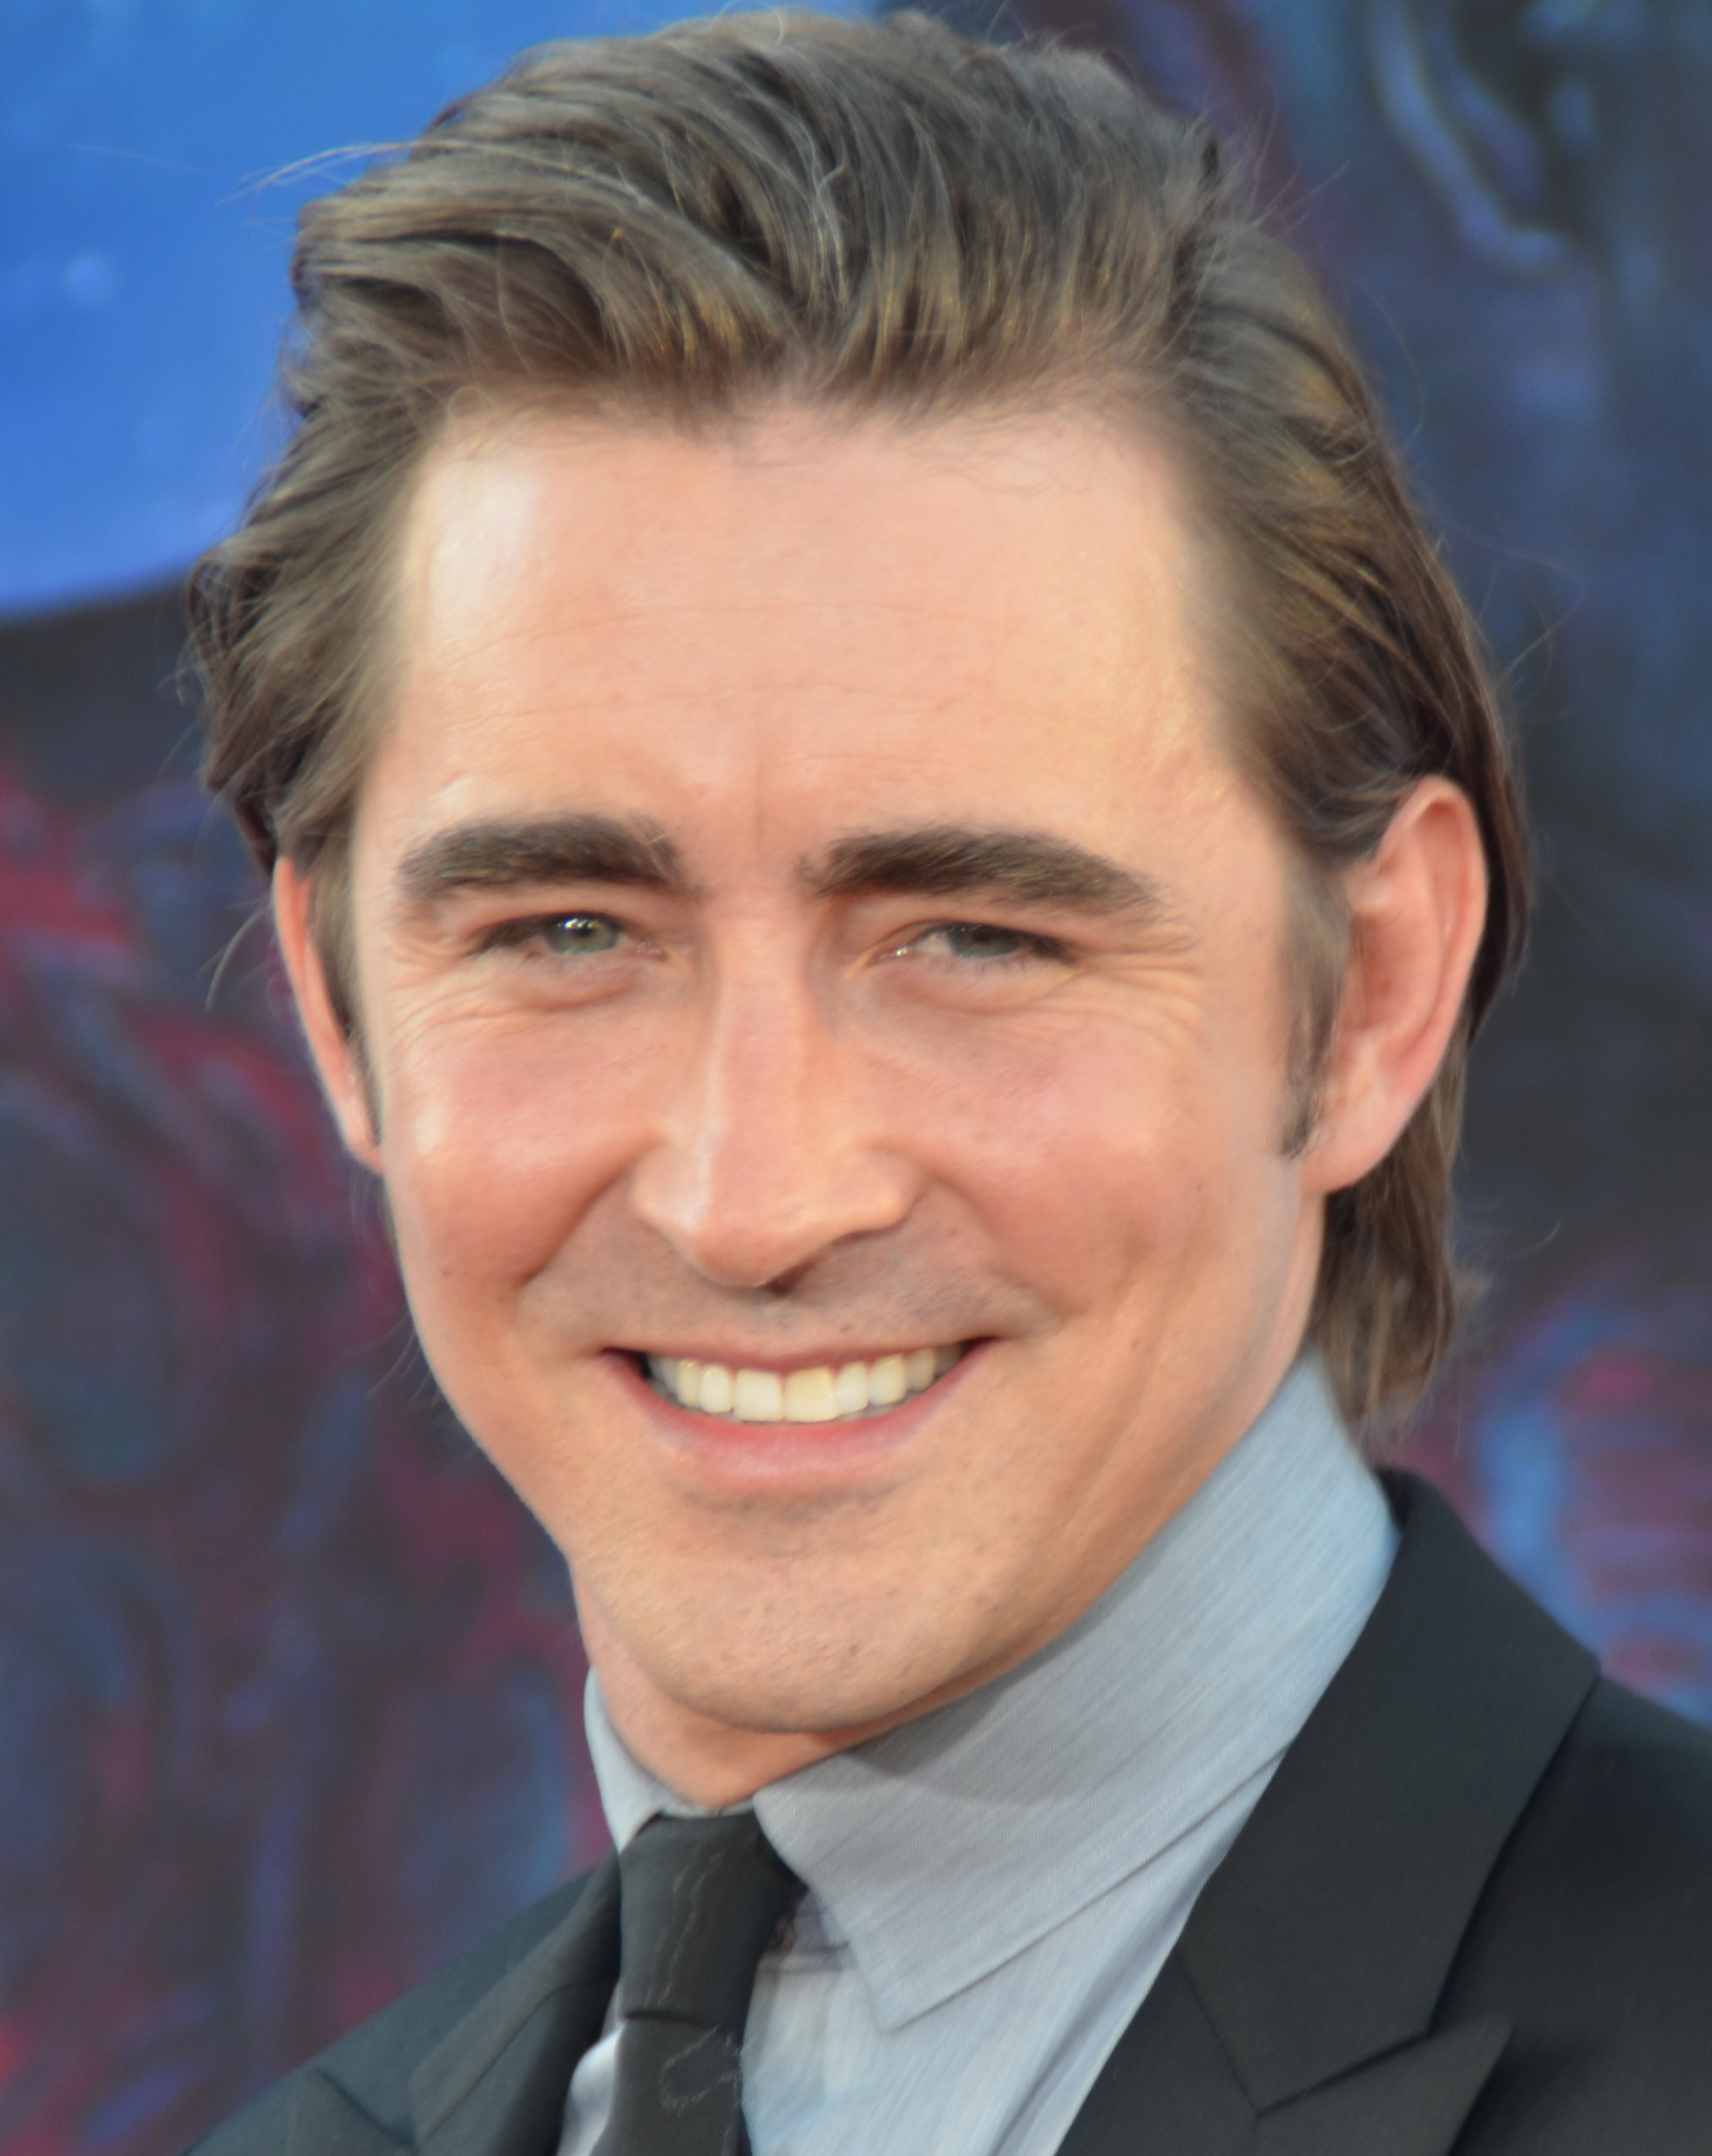 The 38-year old son of father James Roy Pace and mother Charlotte Kloeckler Pace, 190 cm tall Lee Pace in 2017 photo